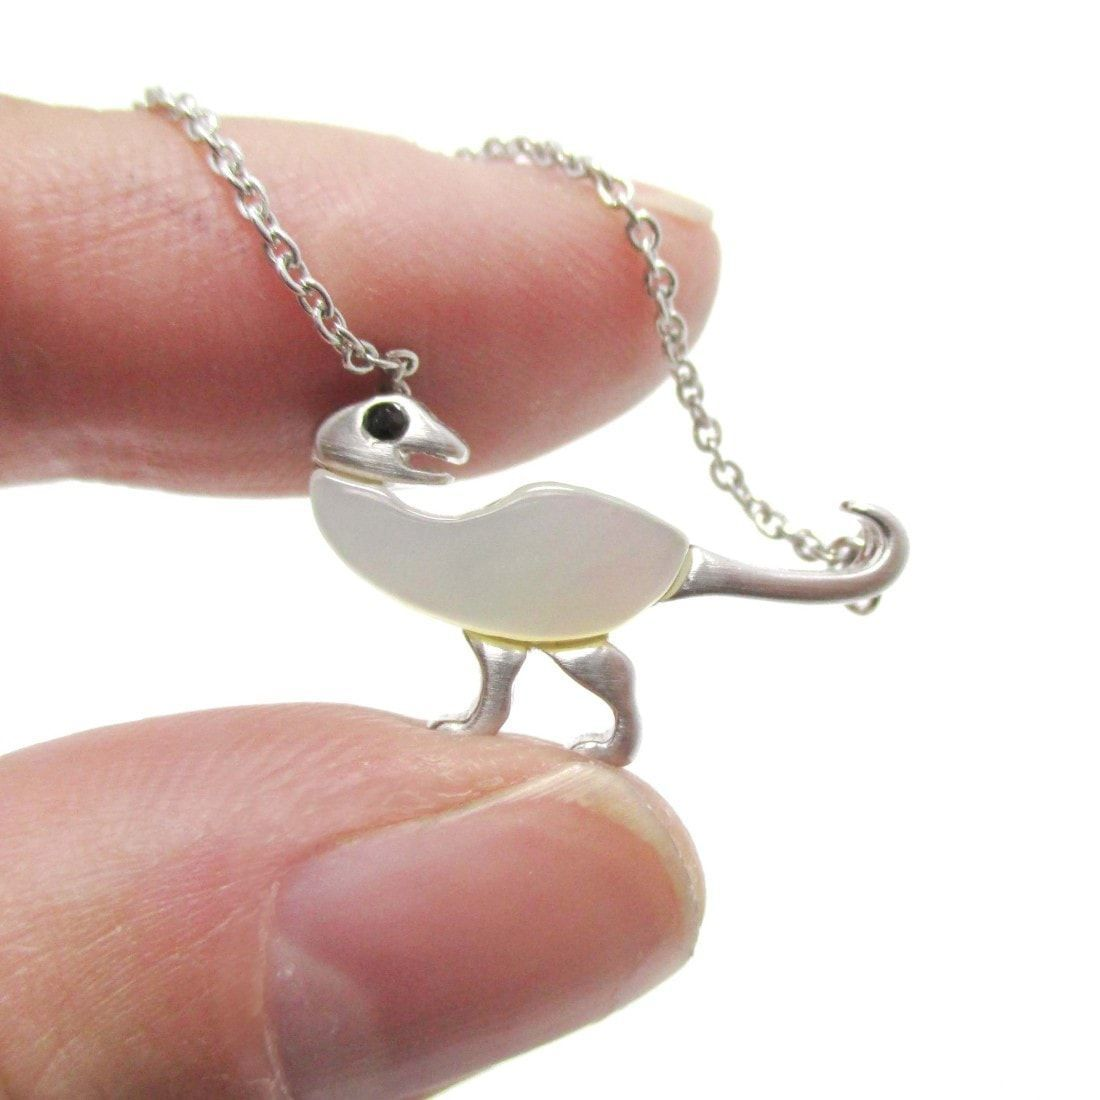 Ornithomimus Dinosaur Shaped Pendant Necklace in Silver with Pearl Detail | DOTOLY